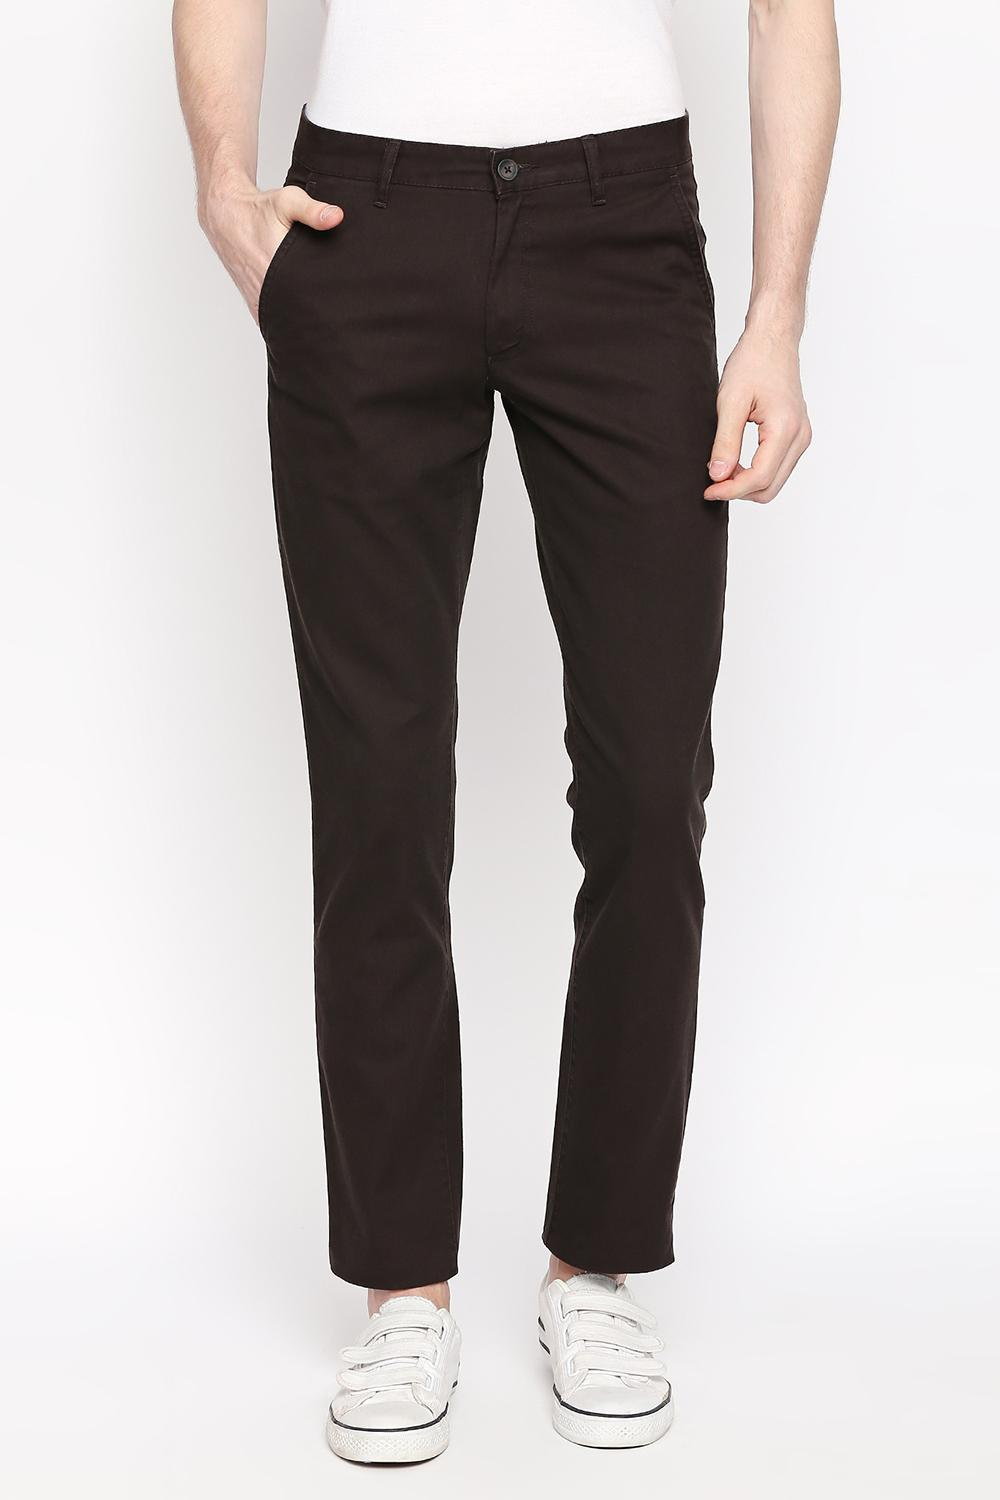 c3555cc2302 Buy Mens Trousers and Chinos Online in India